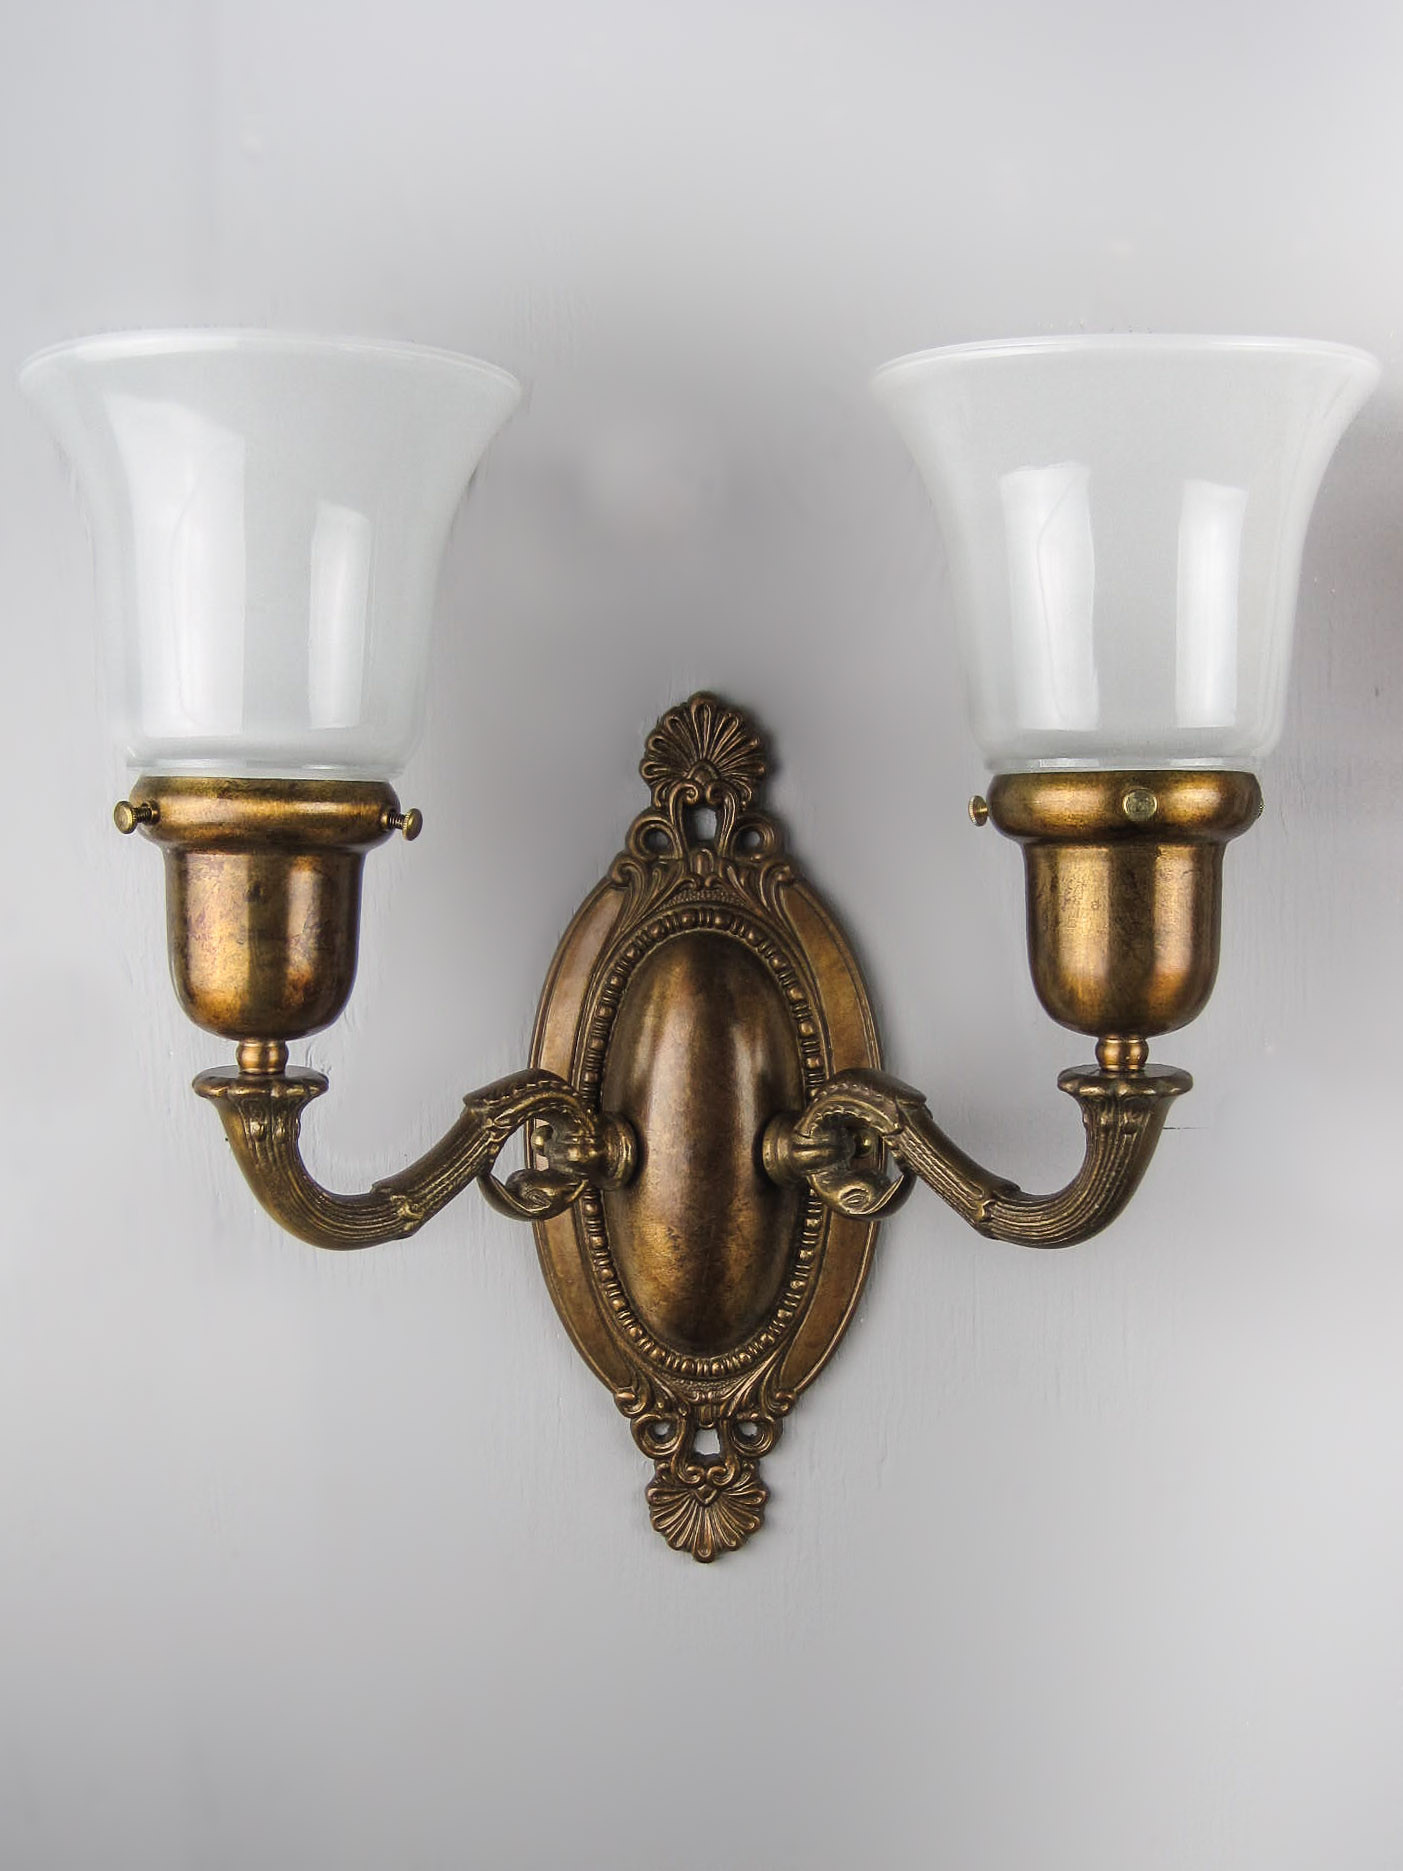 Wall Sconces Double : Edwardian Dolphin Wall Sconce (Double Arm) Renew Gallery